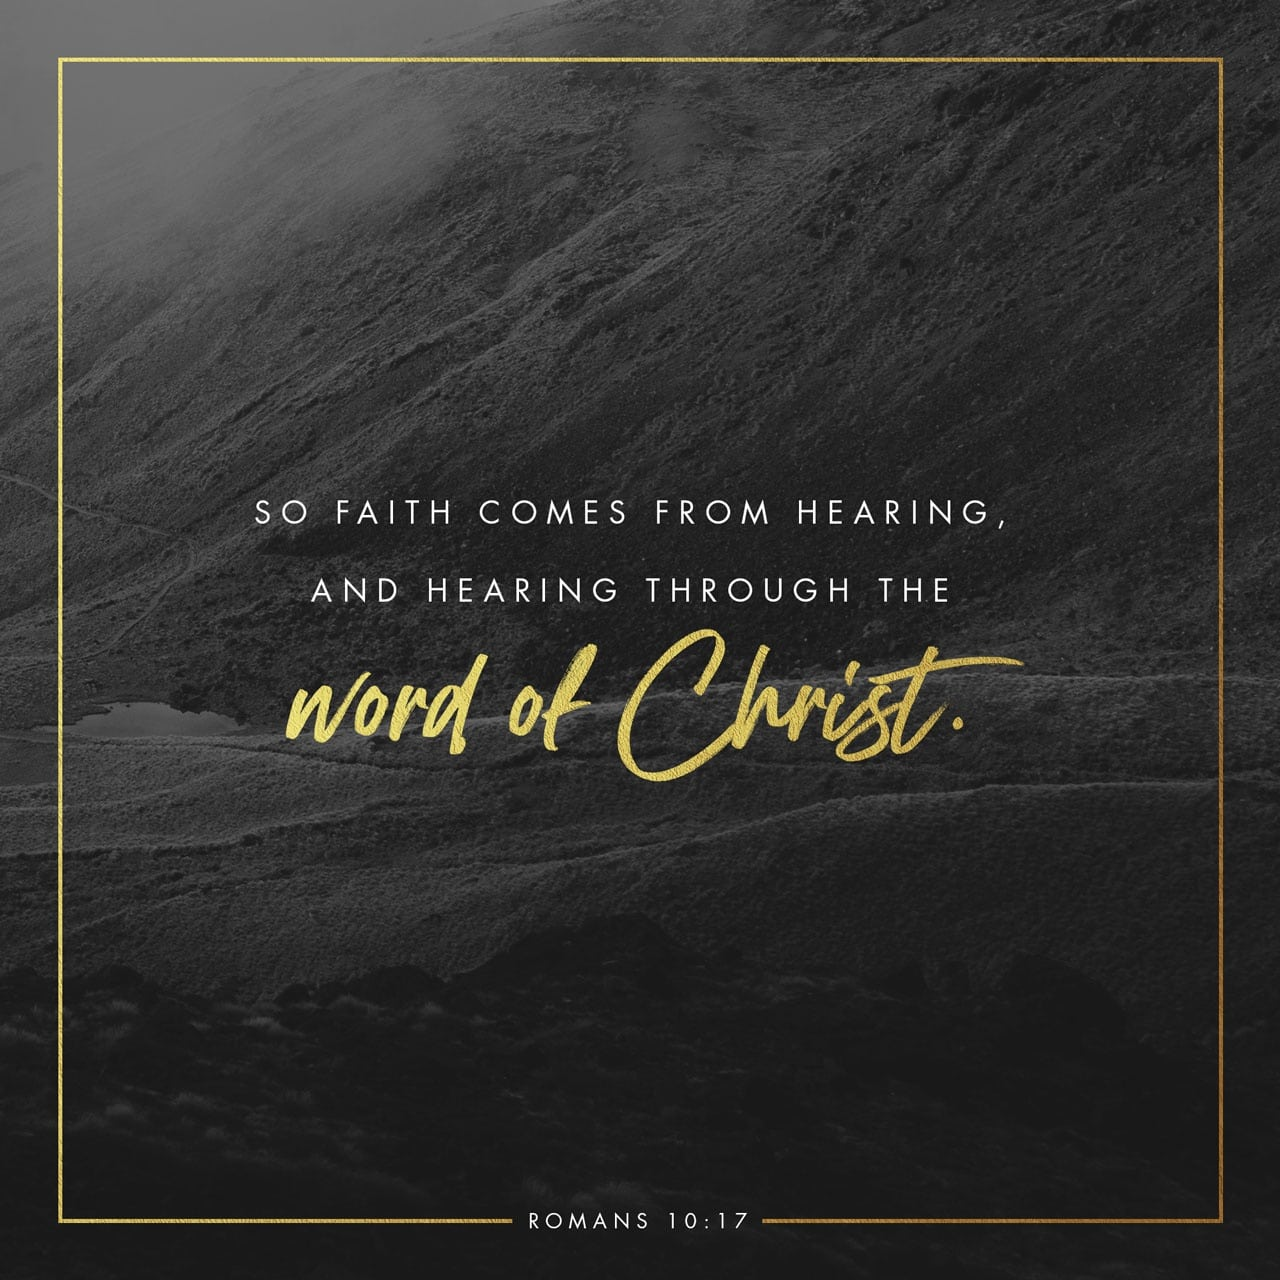 Faith Comes By Hearing - Scripture quote